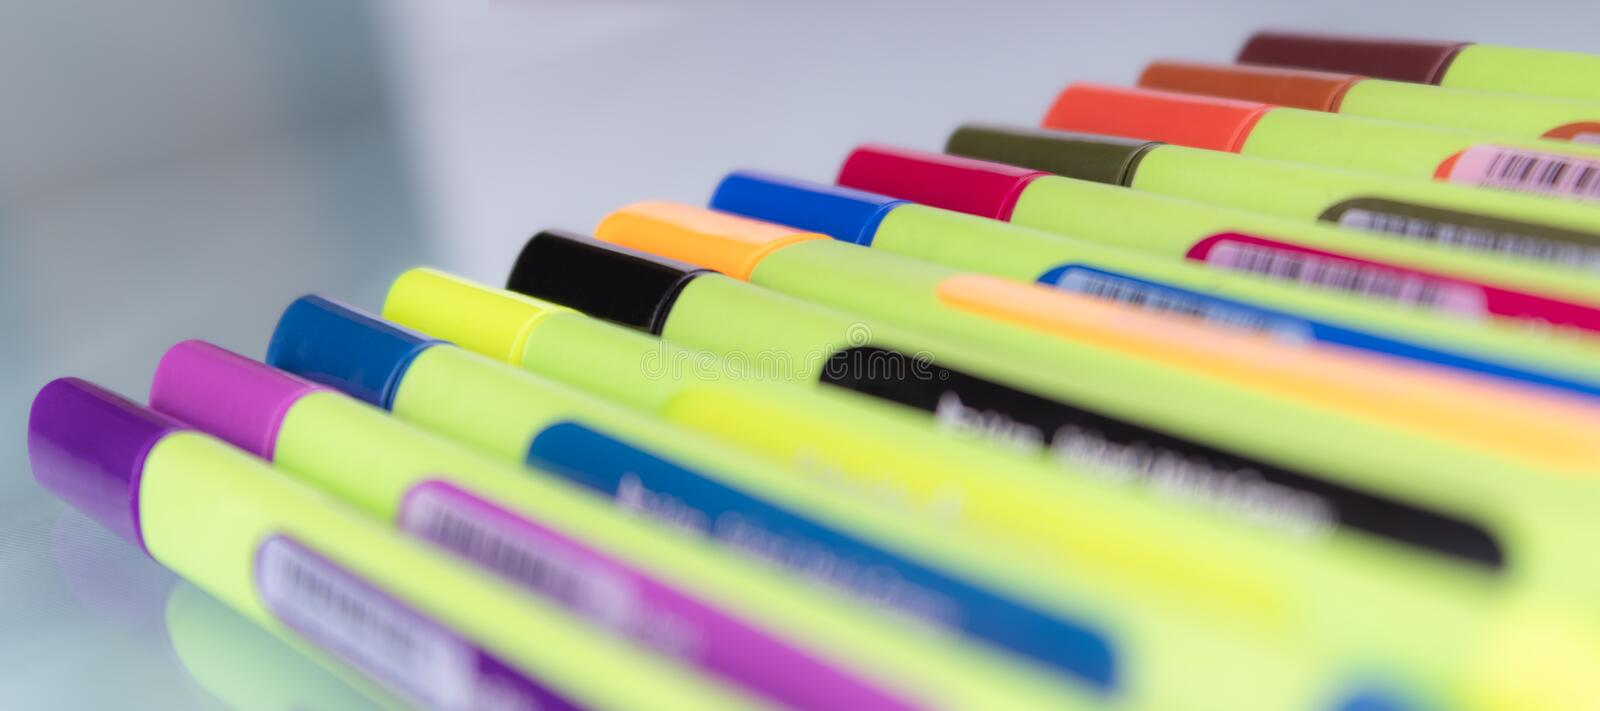 A set of multi-colored markers located on the glass with blur foreground royalty free stock photography